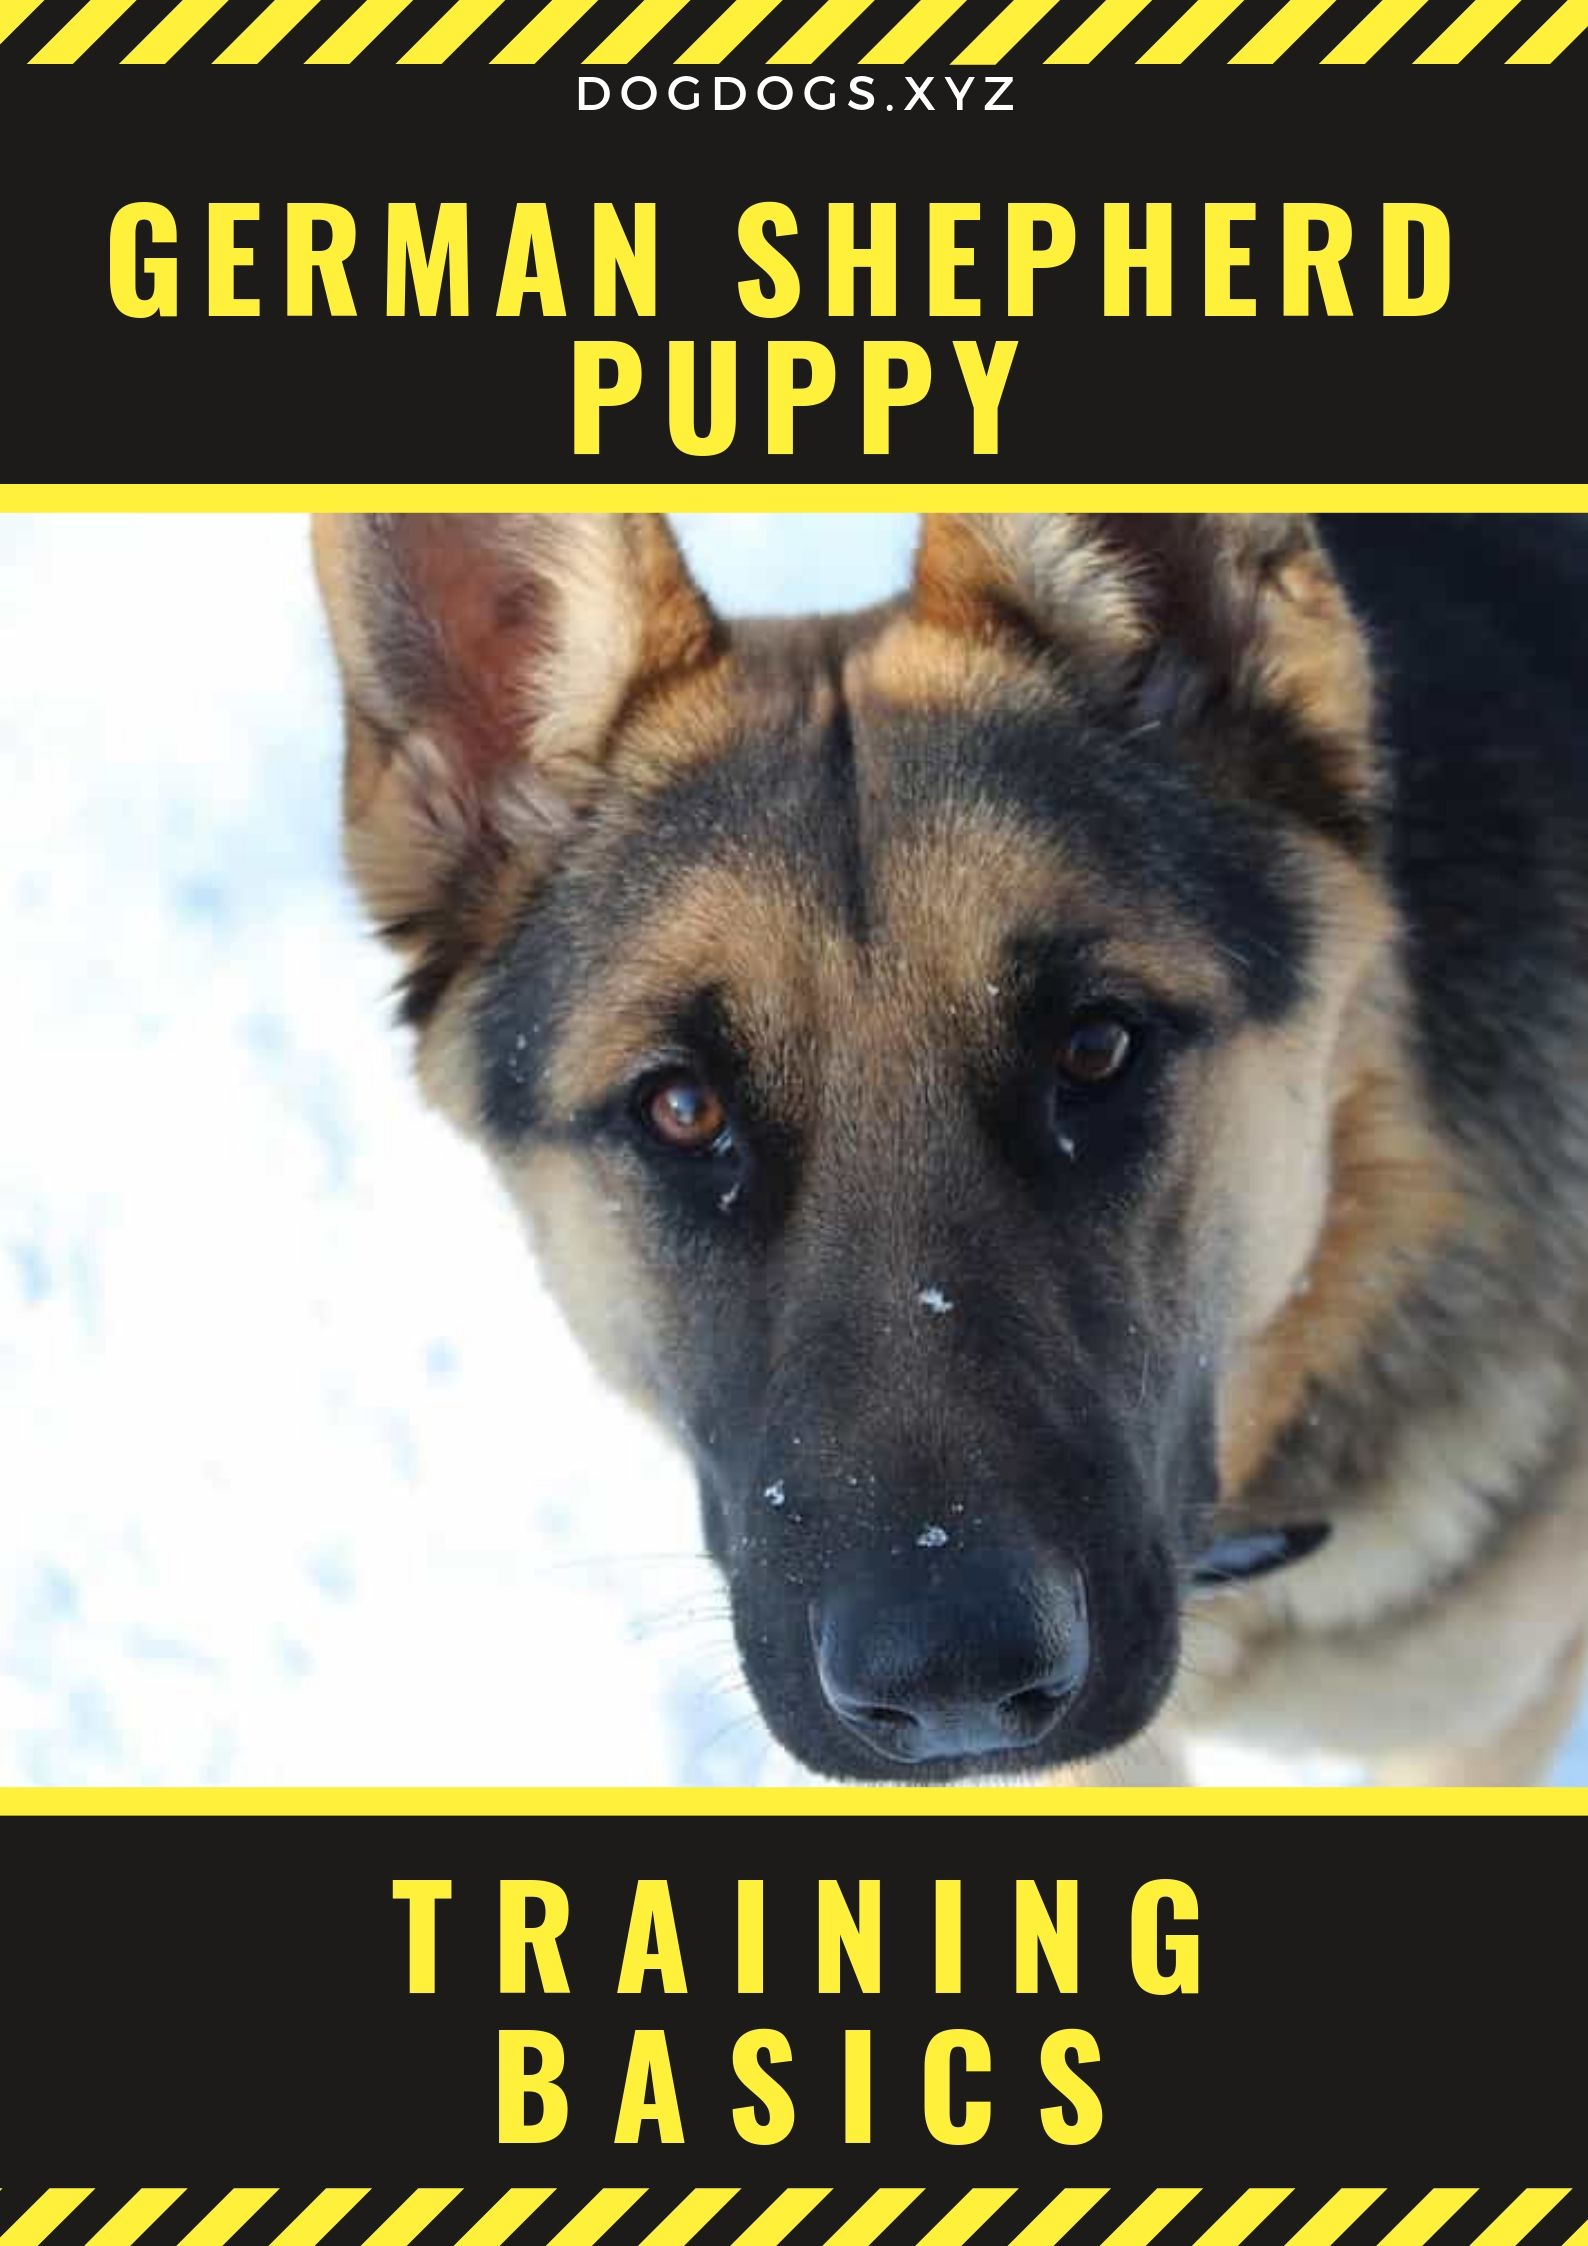 The Benefits Of German Shepherd Puppy Training Basics German